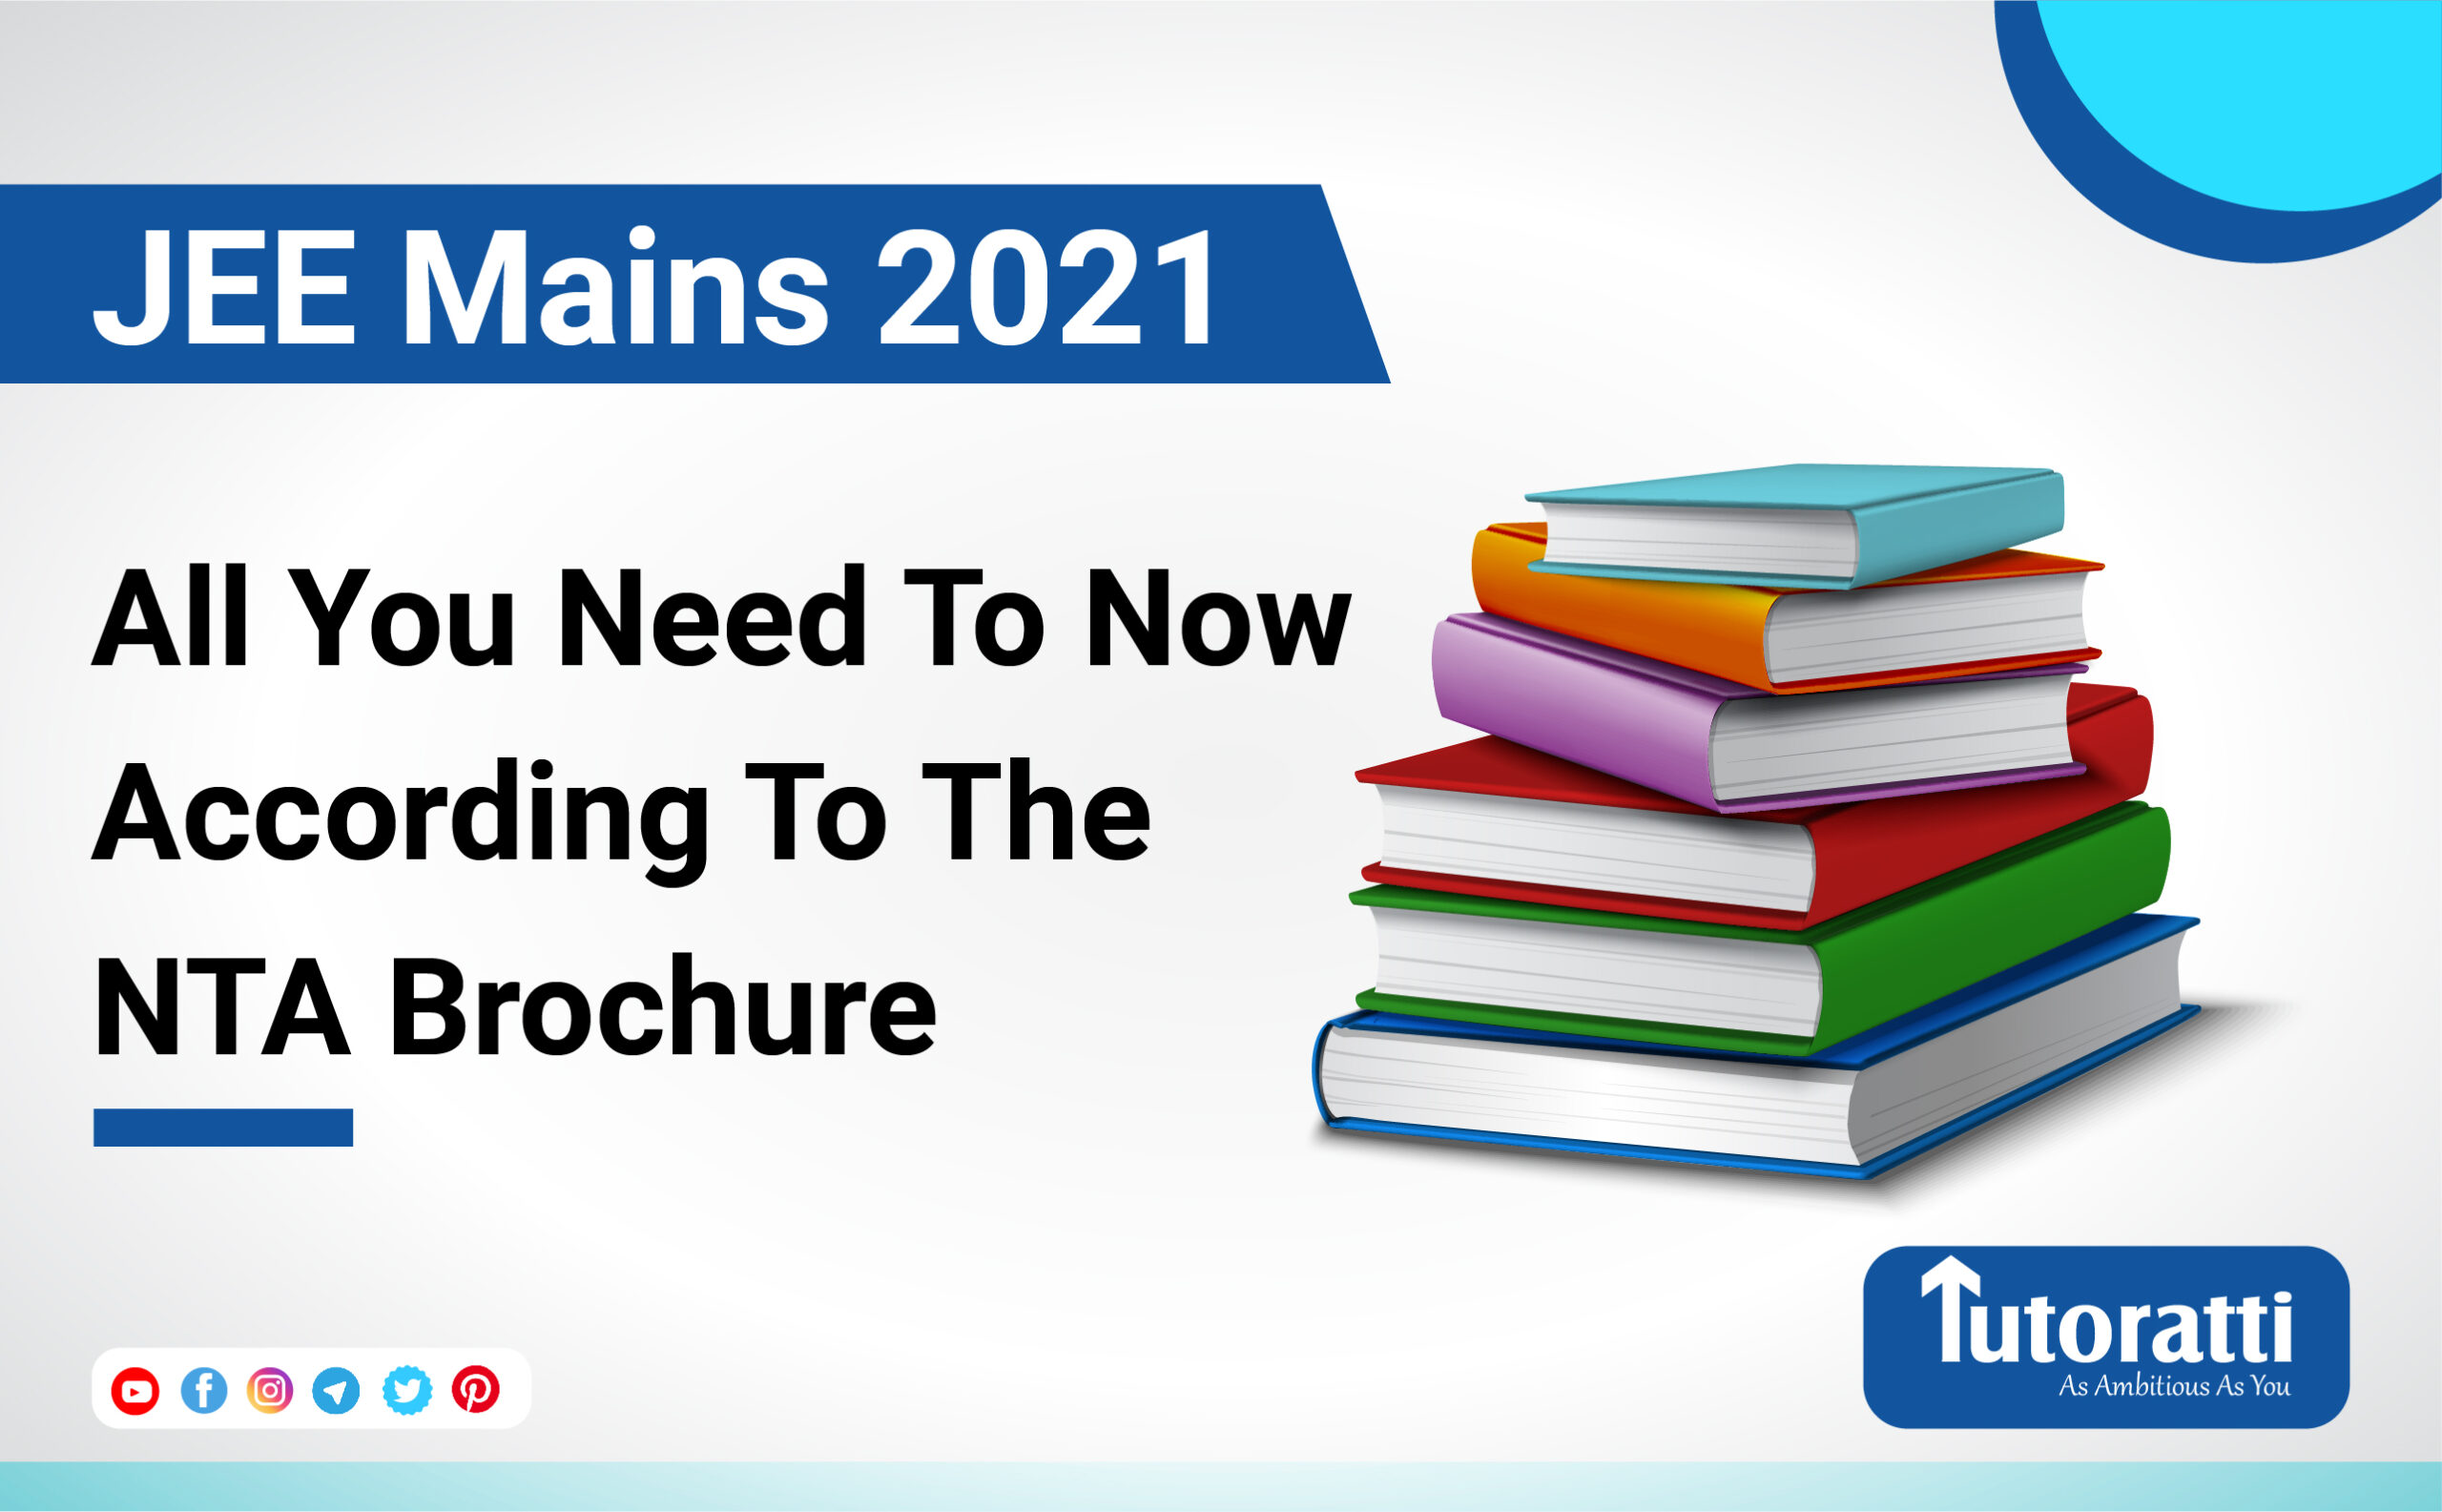 JEE Mains 2021: All You Need To Now According To The NTA Brochure